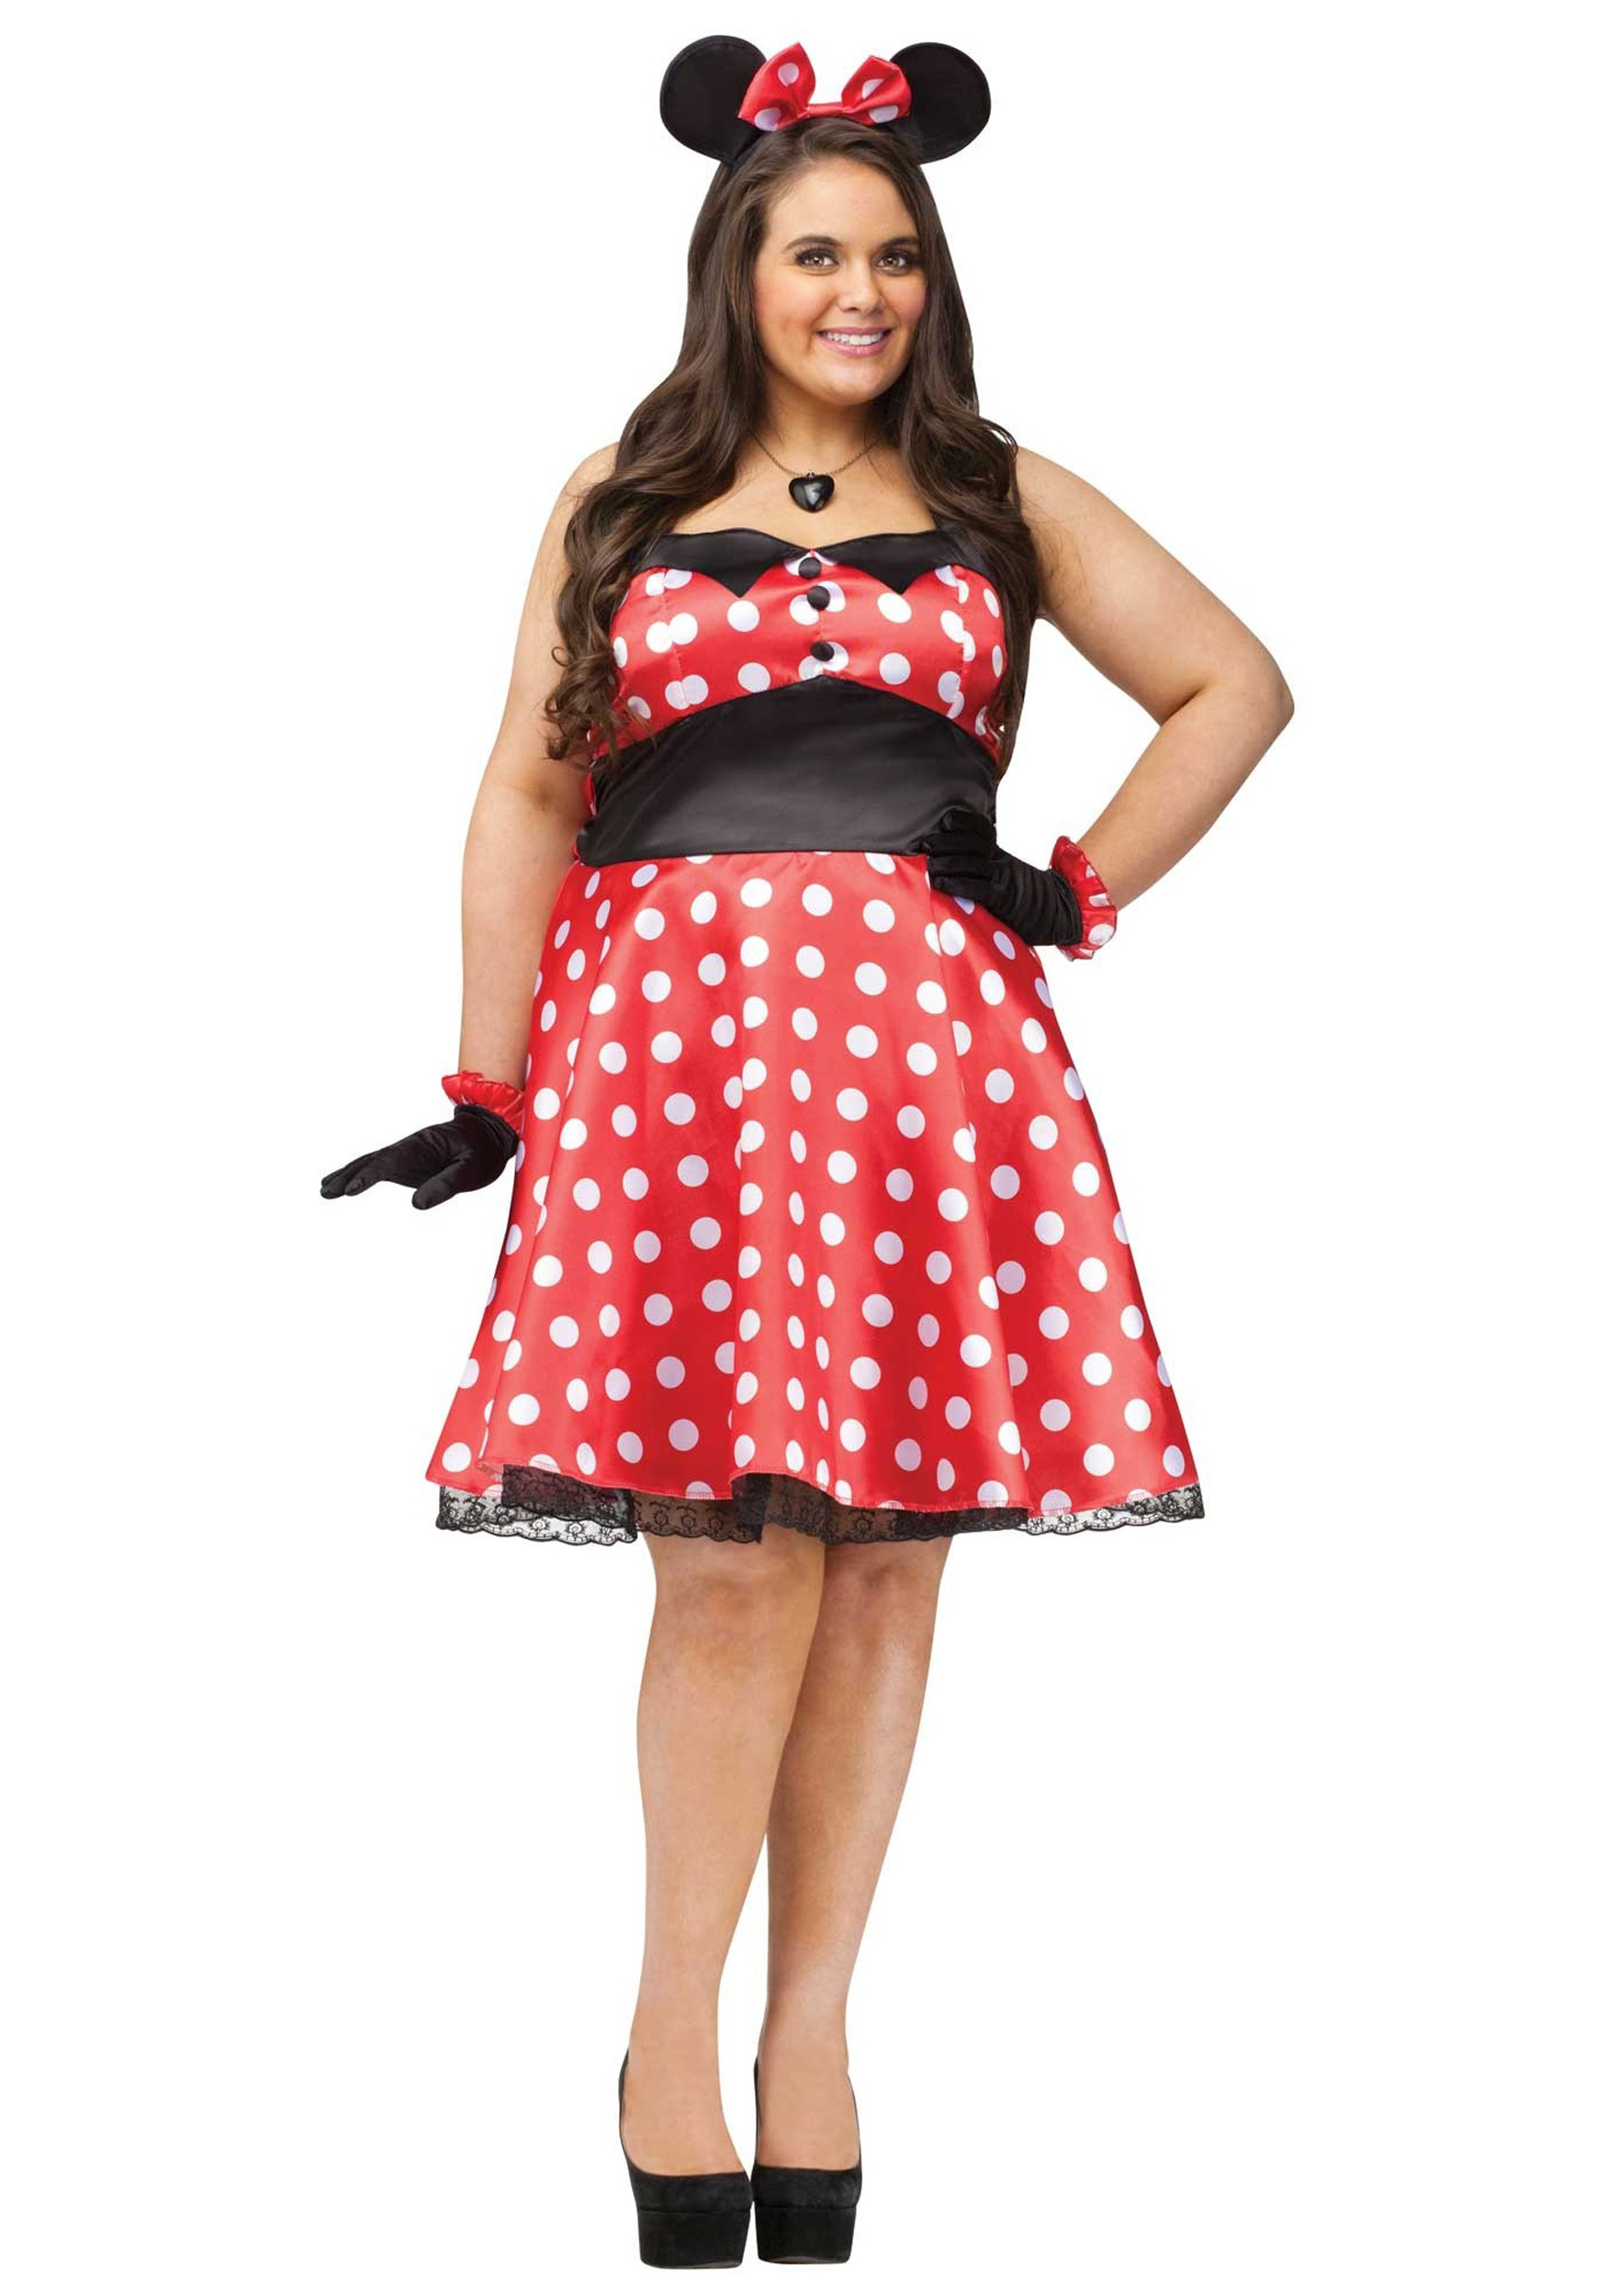 Plus Size Retro Miss Mouse Womenu0027s Costume  sc 1 st  Fun.com & Plus Size Retro Miss Mouse Costume for Women